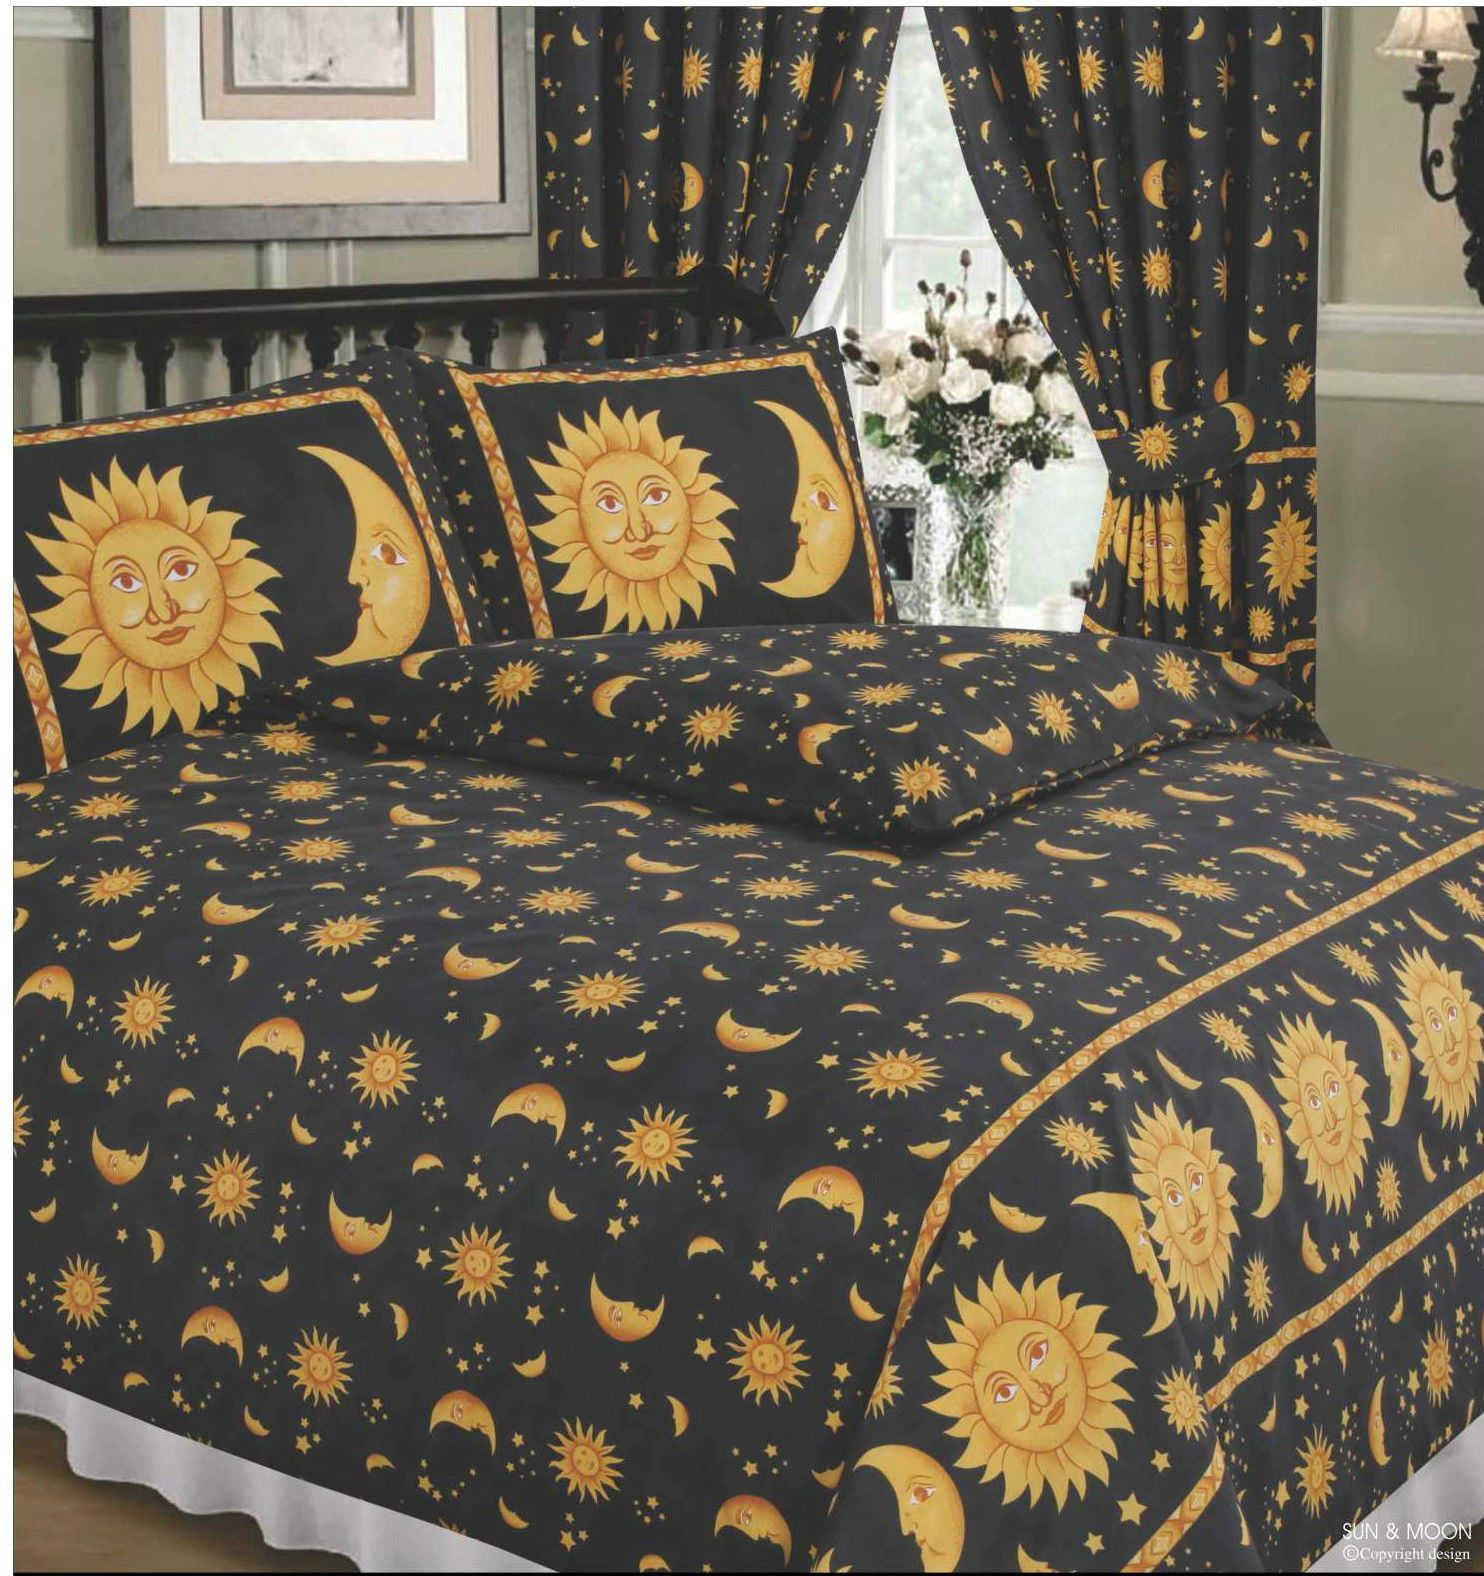 Double Bed Duvet Cover Set Sun And Moon Black Yellow Gold Stars Border 68 Pick Home Duvet Bedding Gold Bed